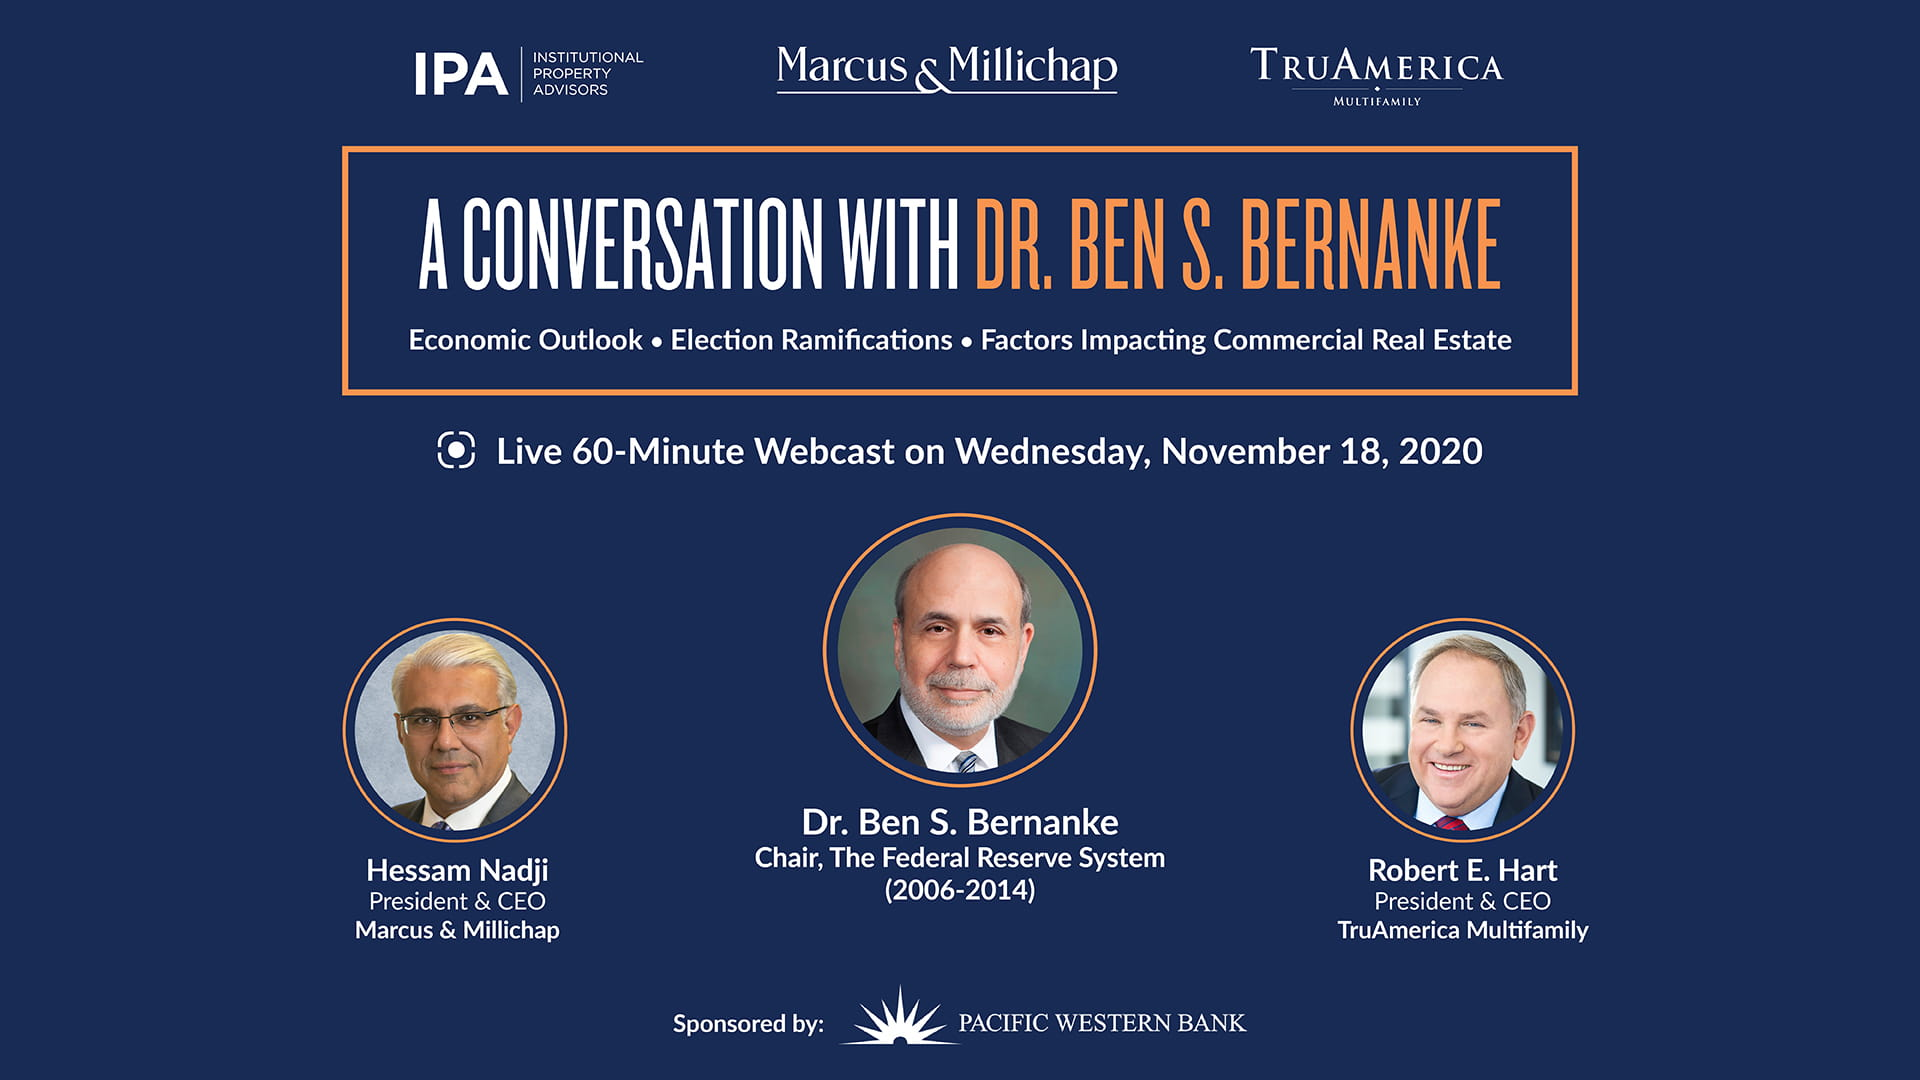 A Conversation with Dr. Ben S. Bernanke